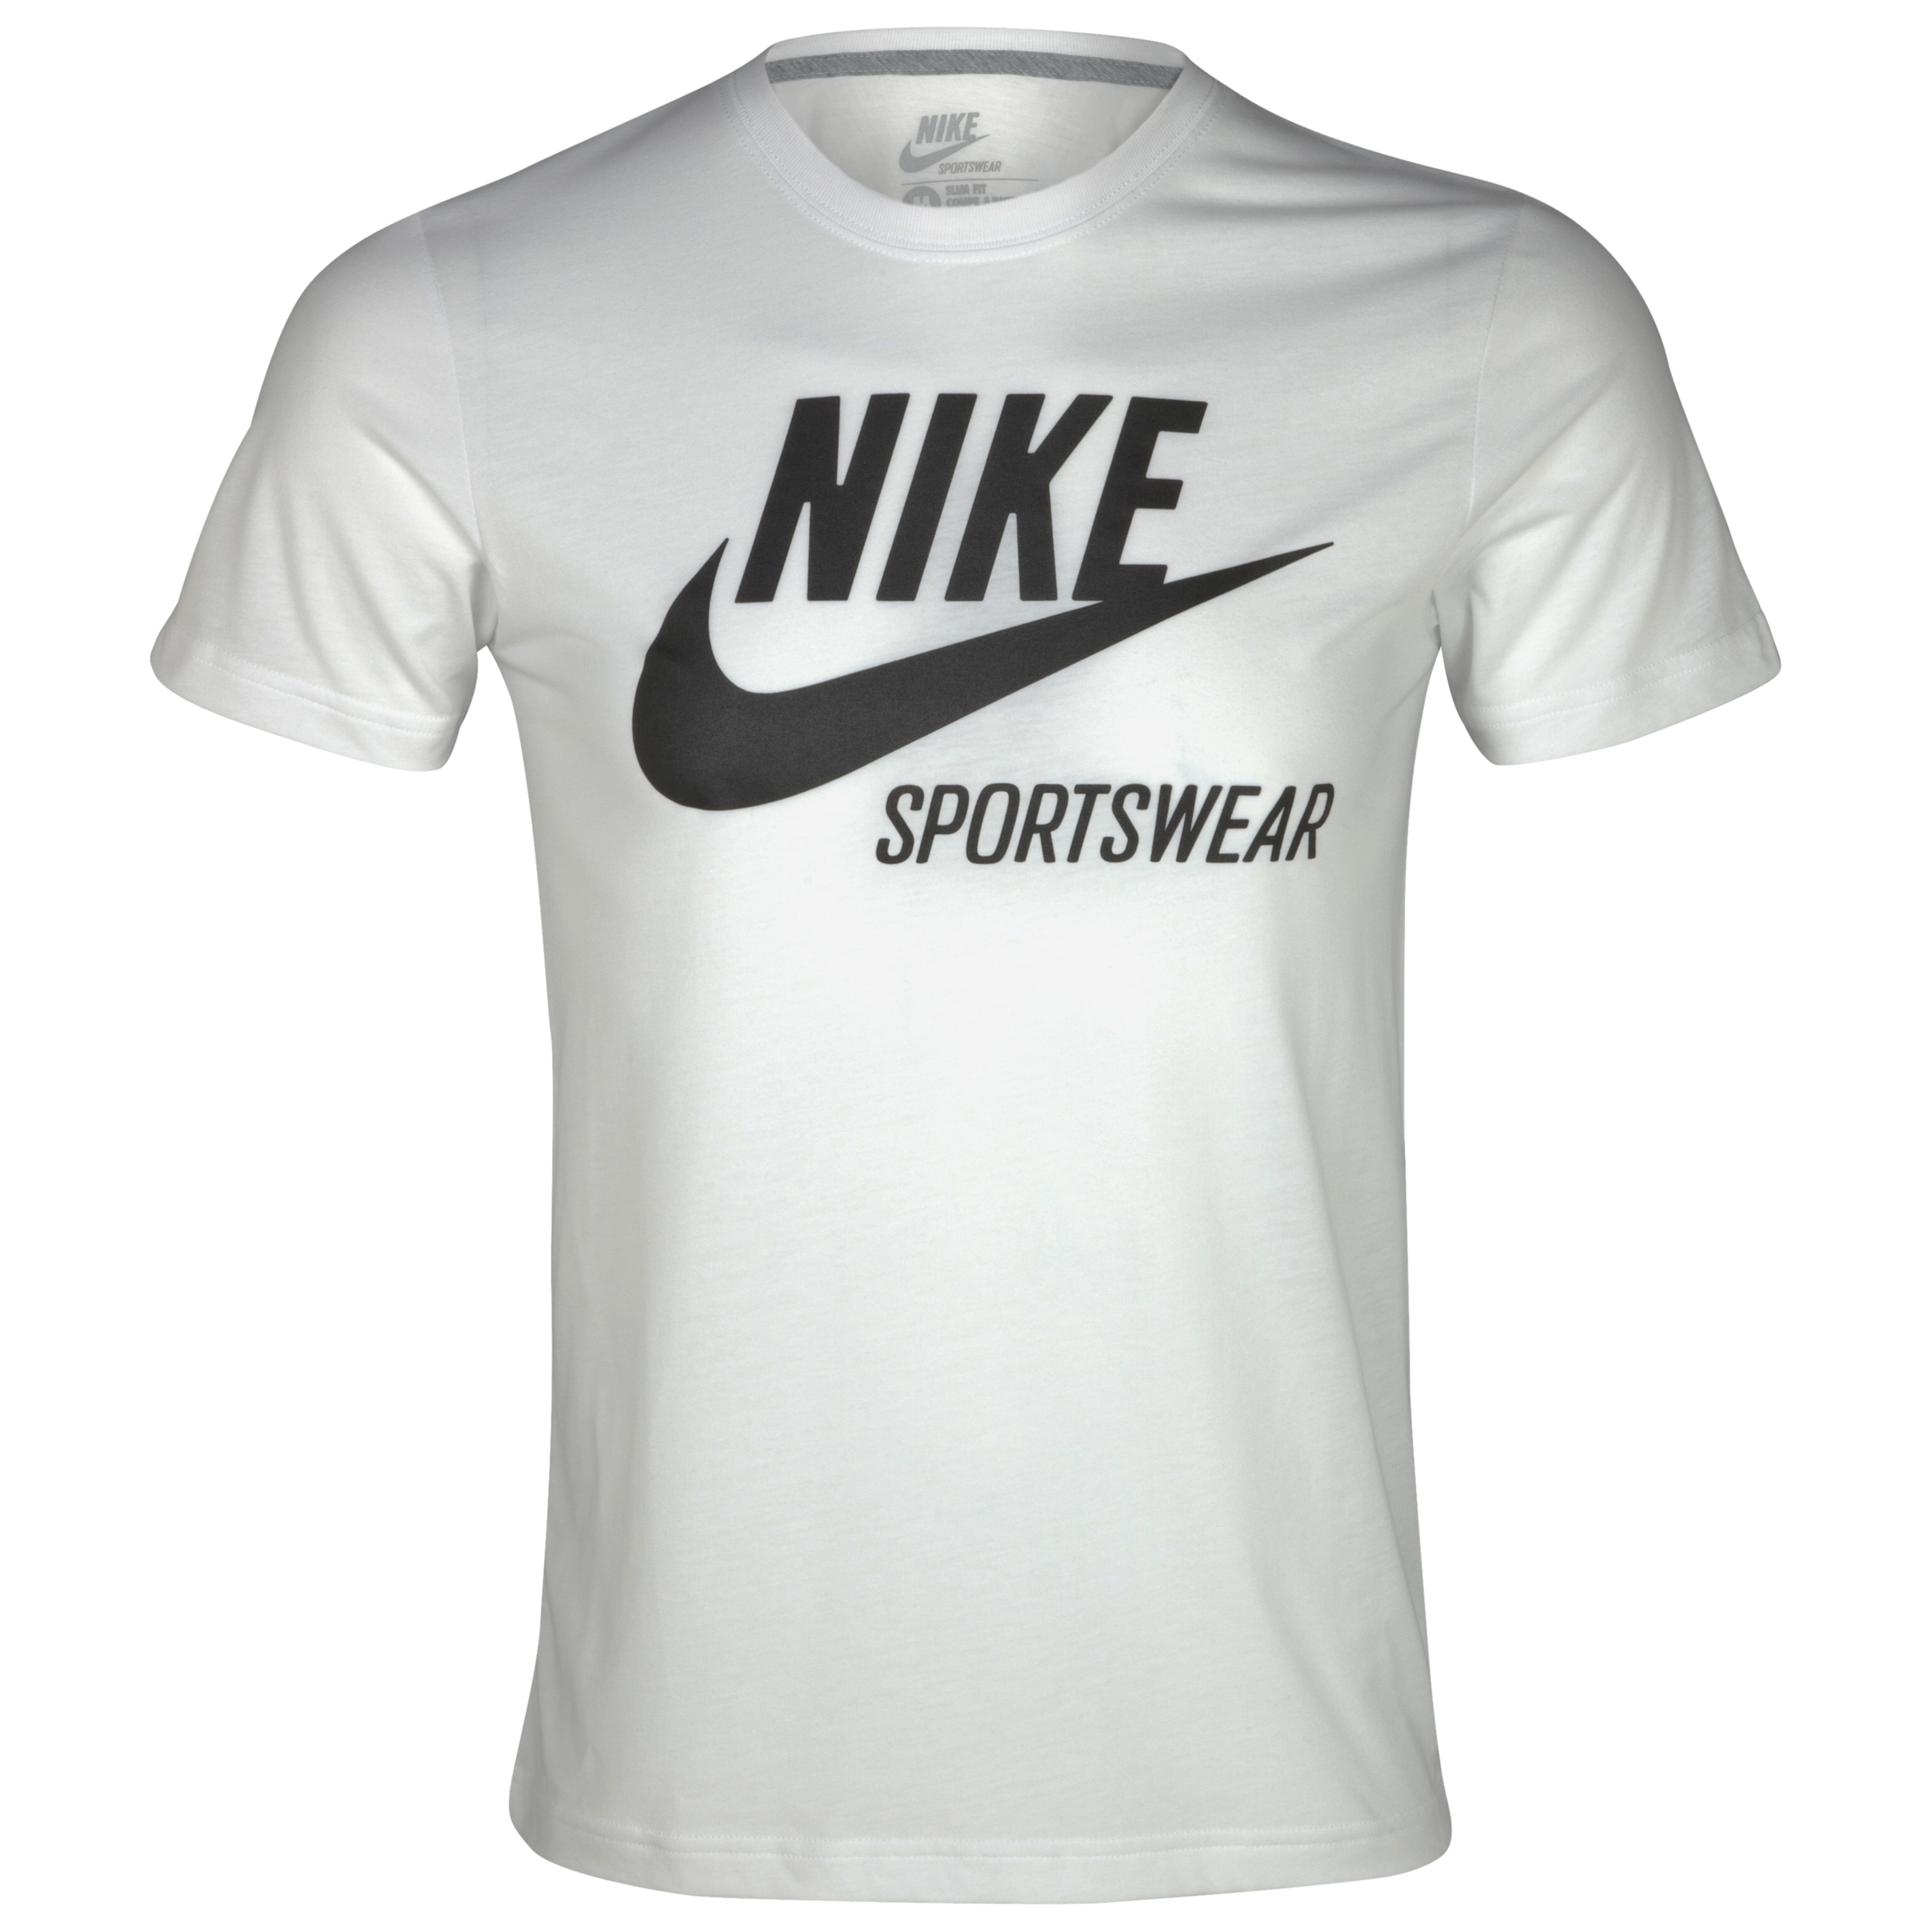 Nike Futura Crackle T-Shirt - White/Black